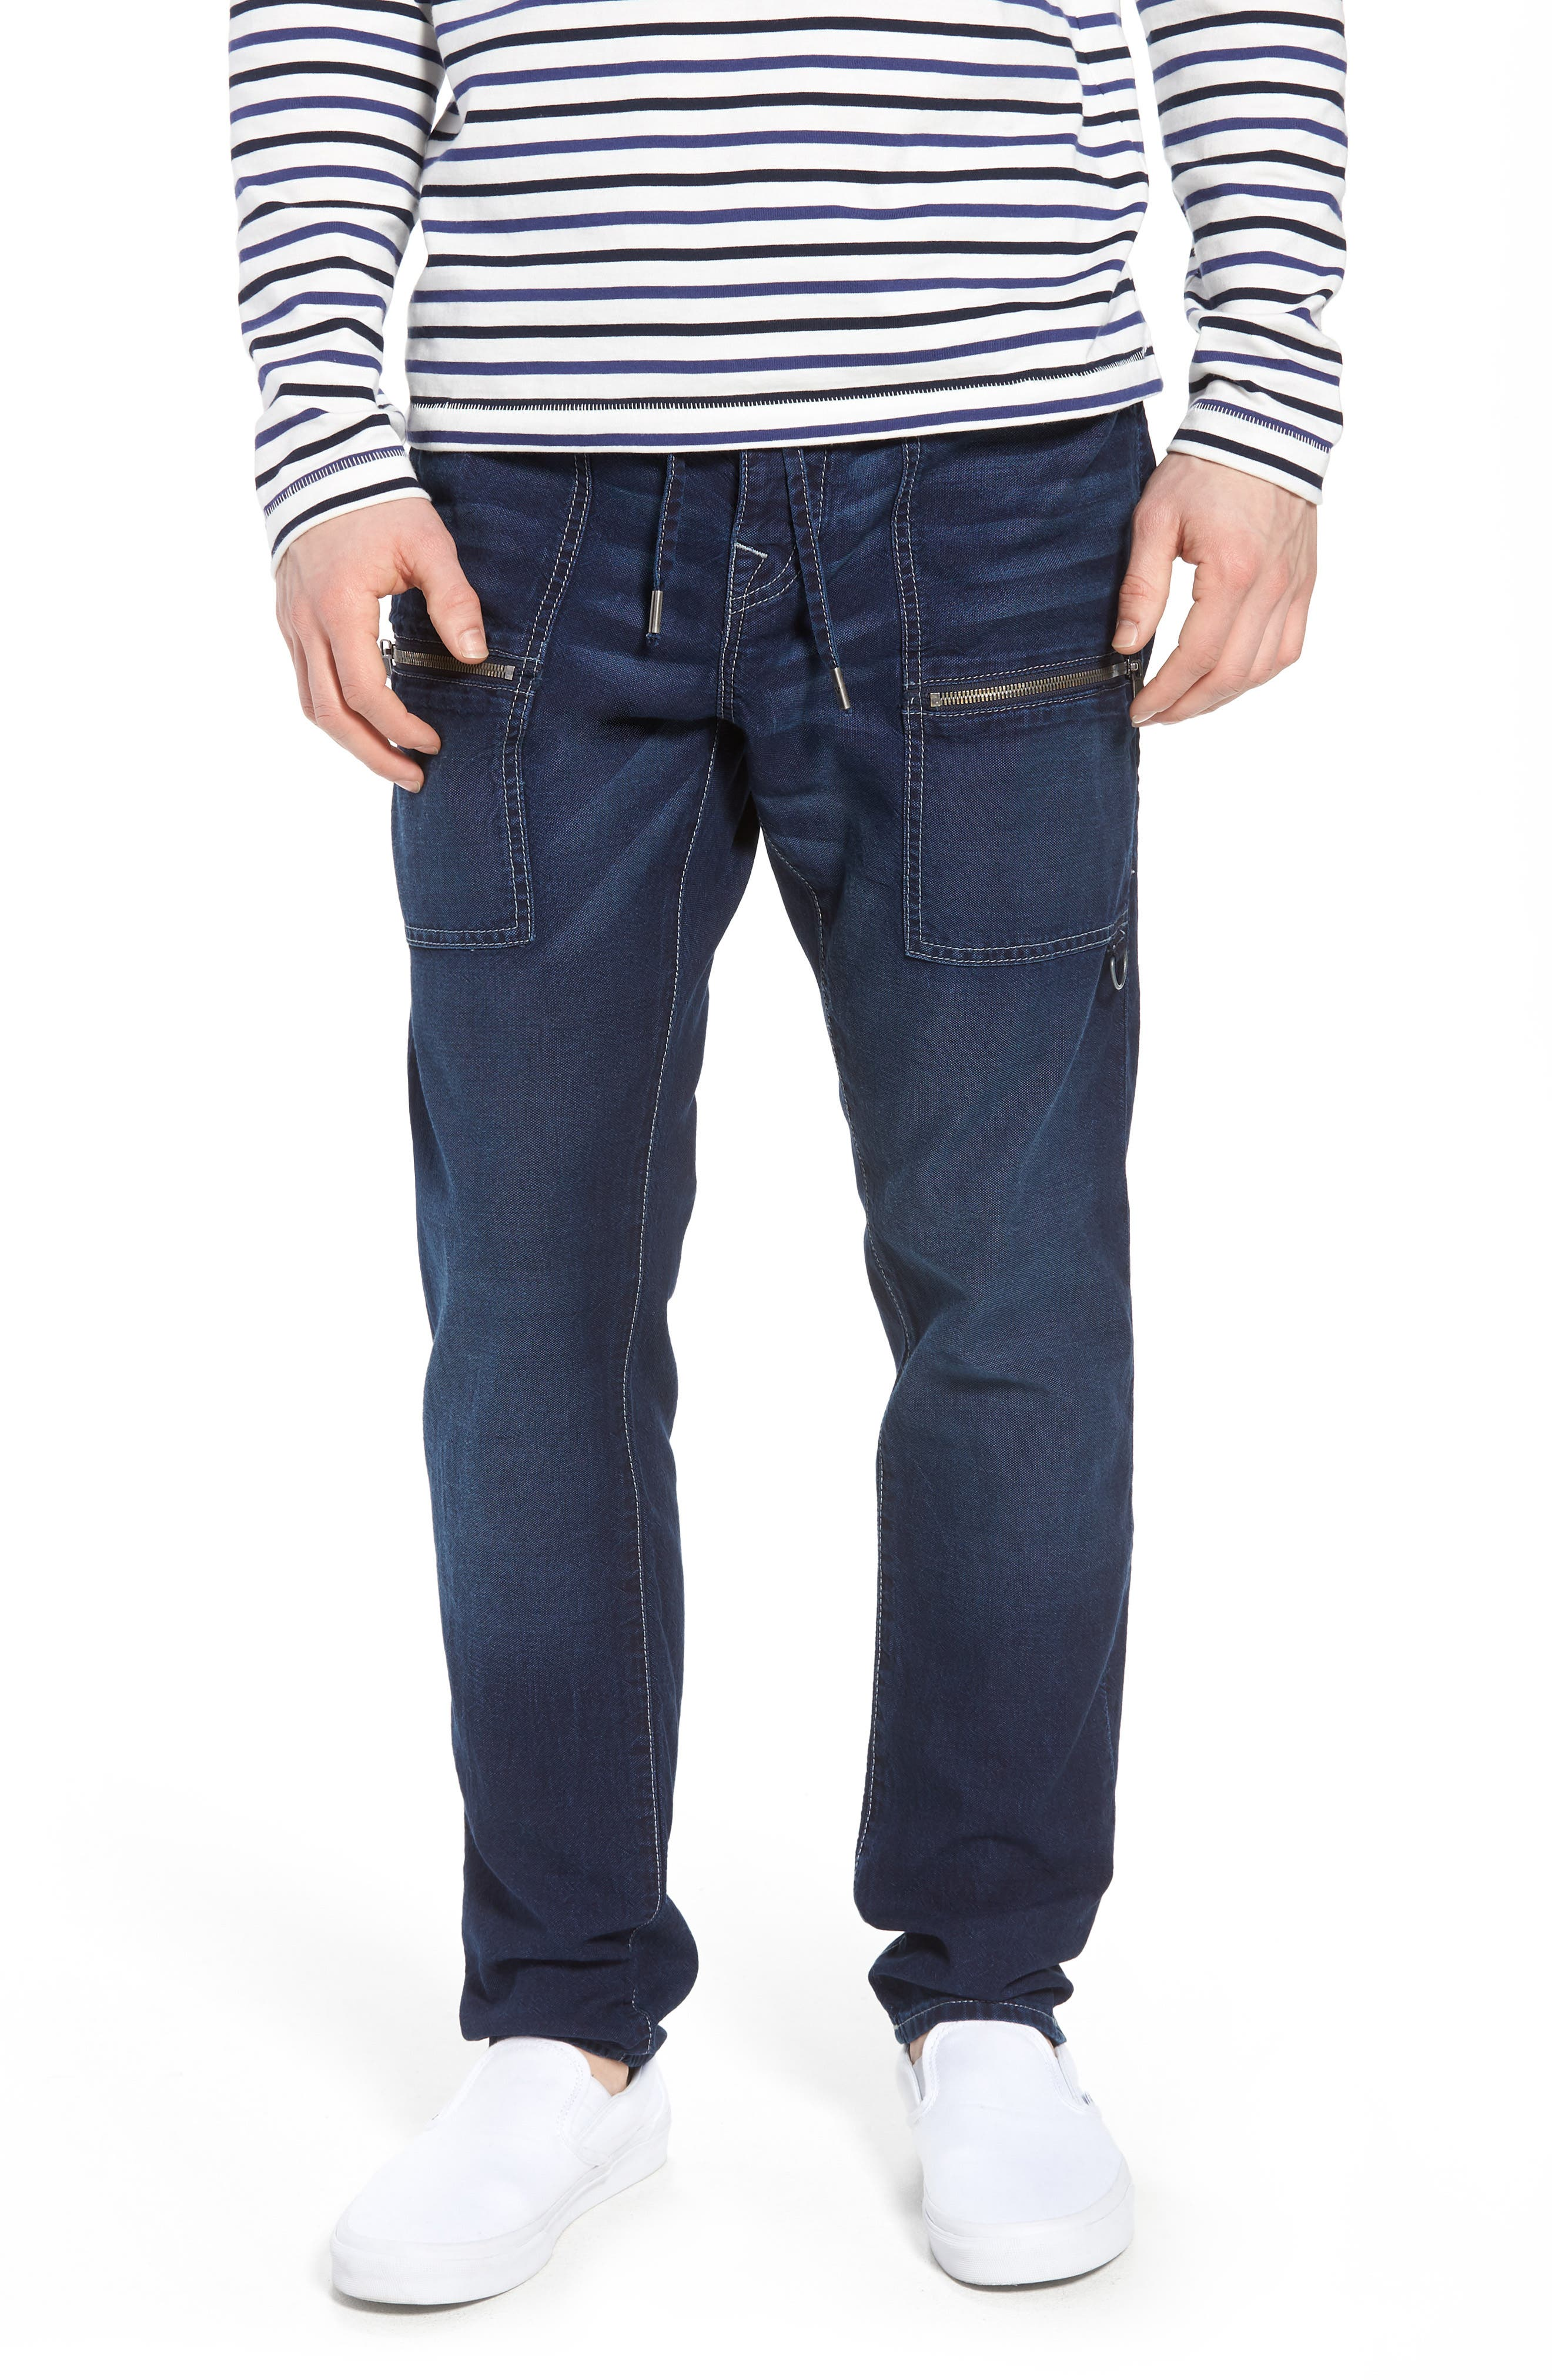 Trail Utility Jeans,                         Main,                         color, Union Special